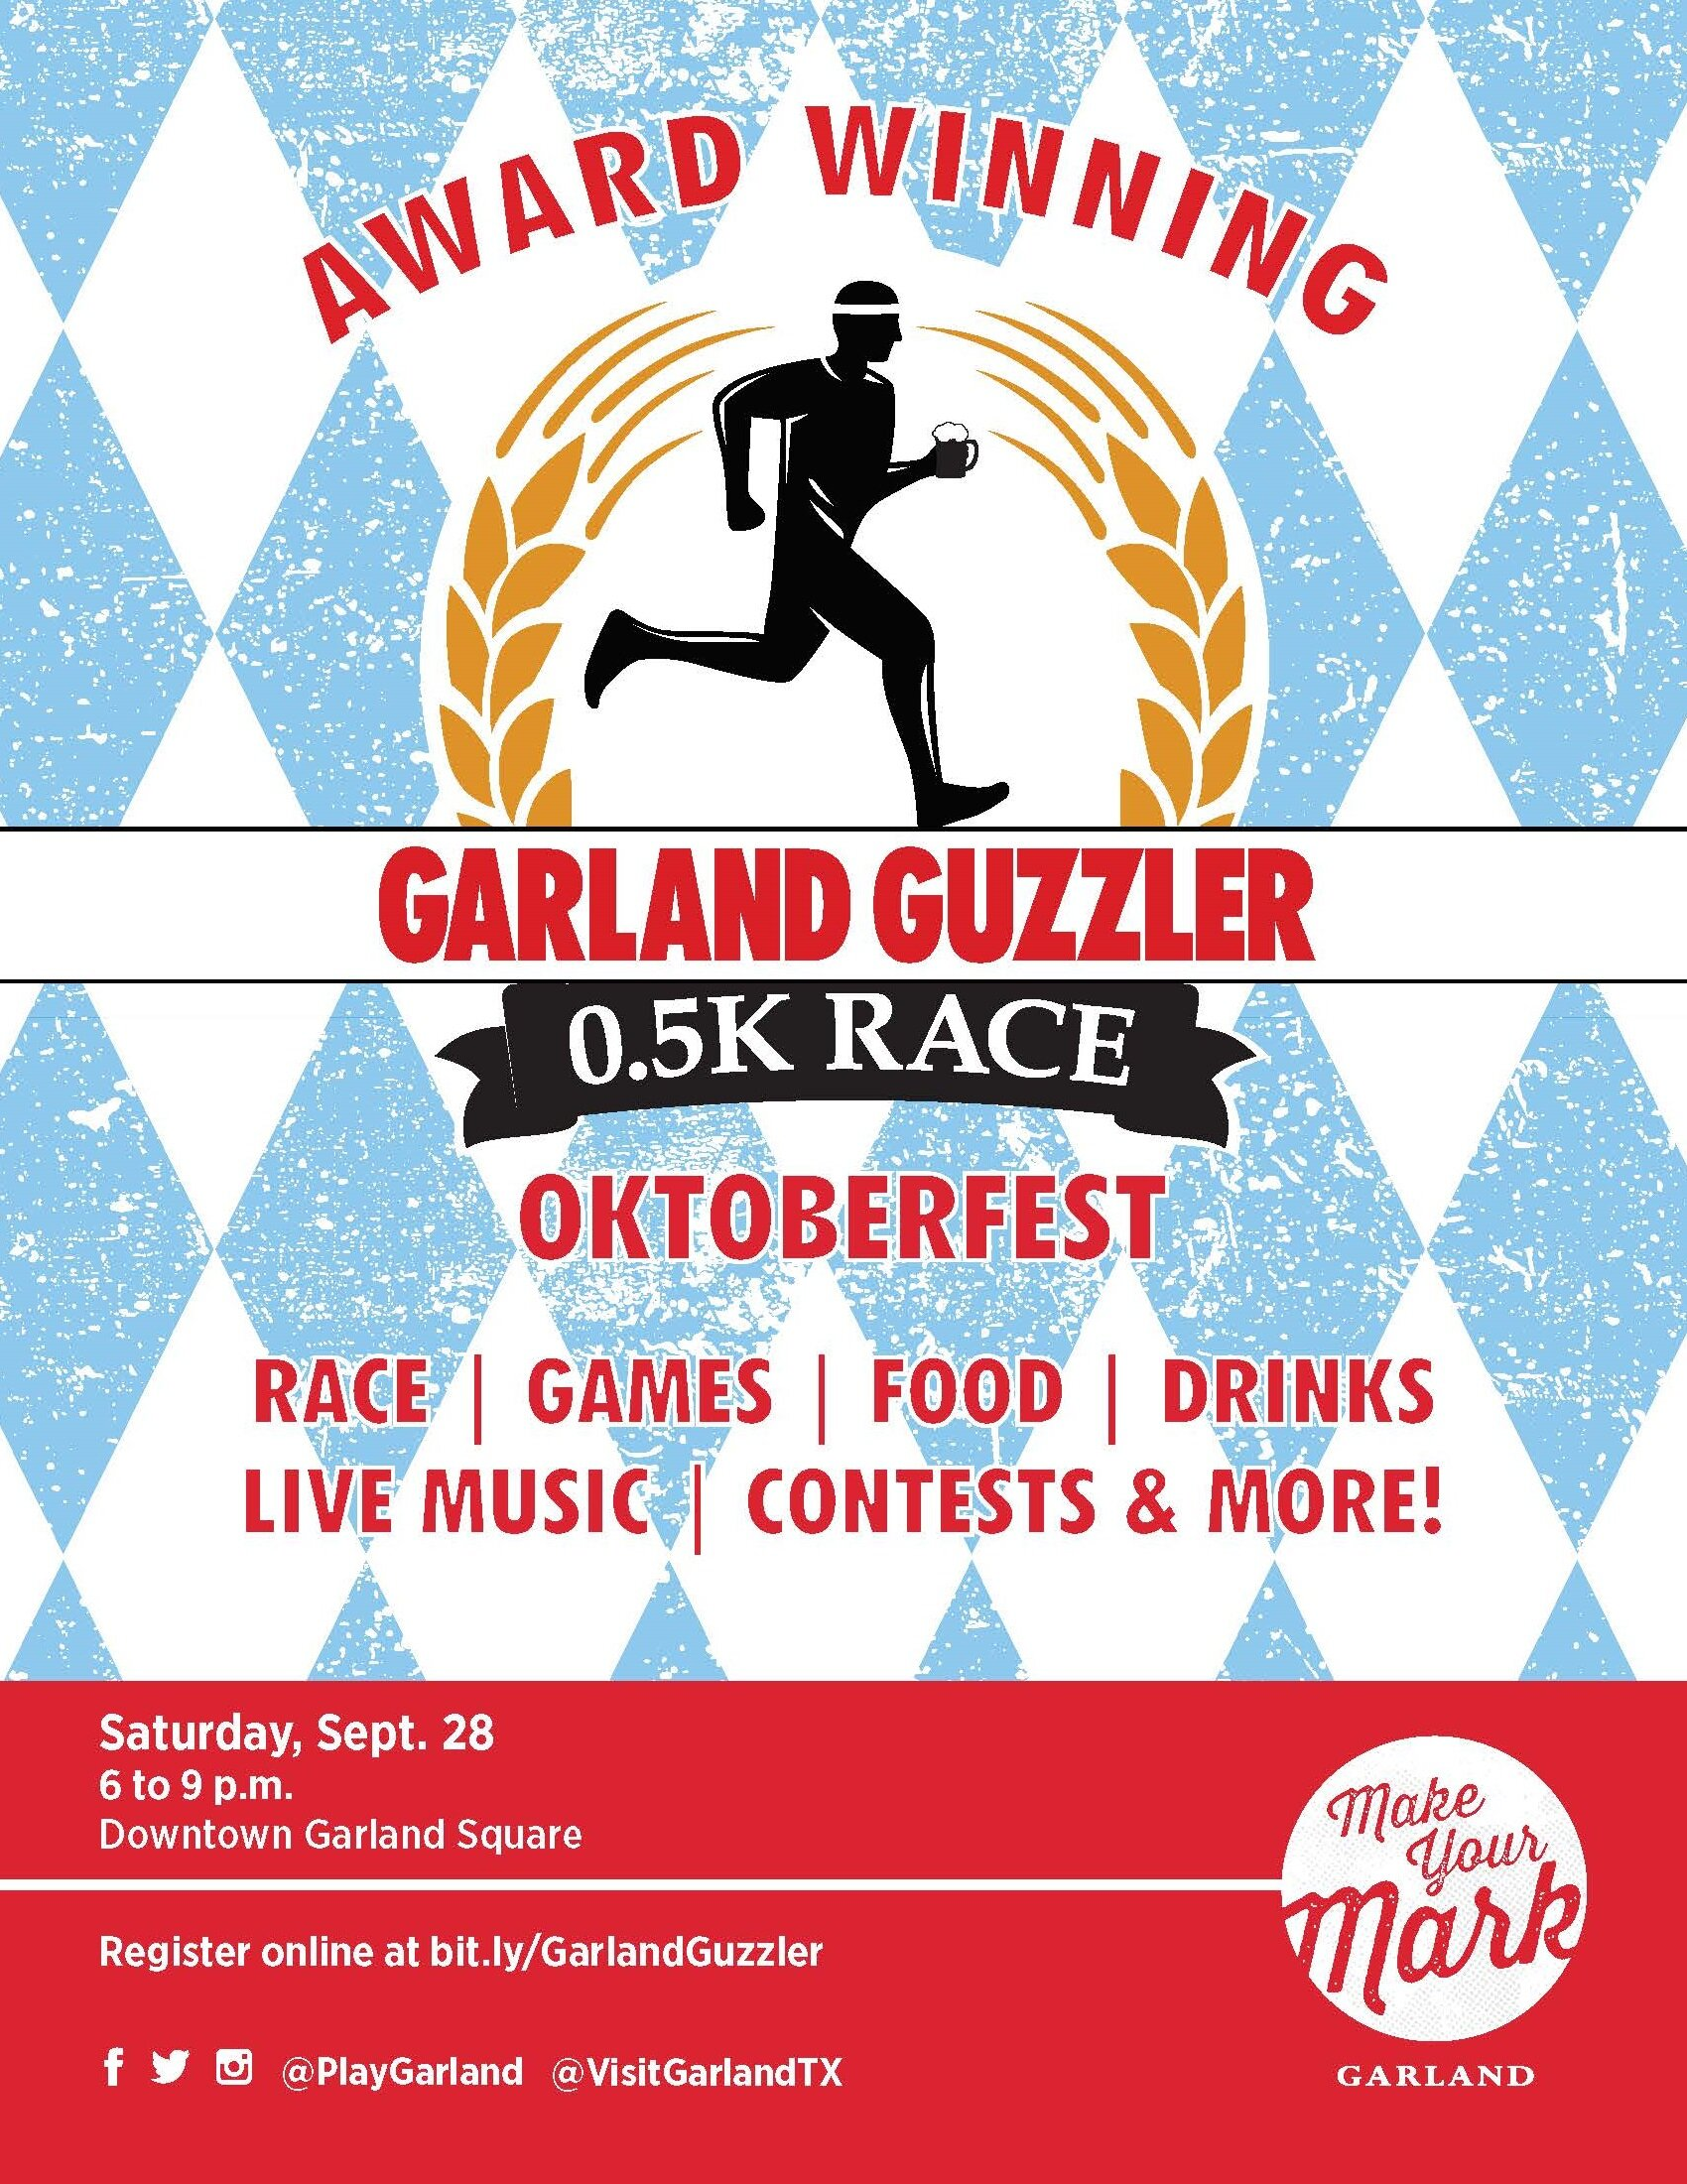 City of Garland_Guzzler for Play Guide_Fall_2019.jpg